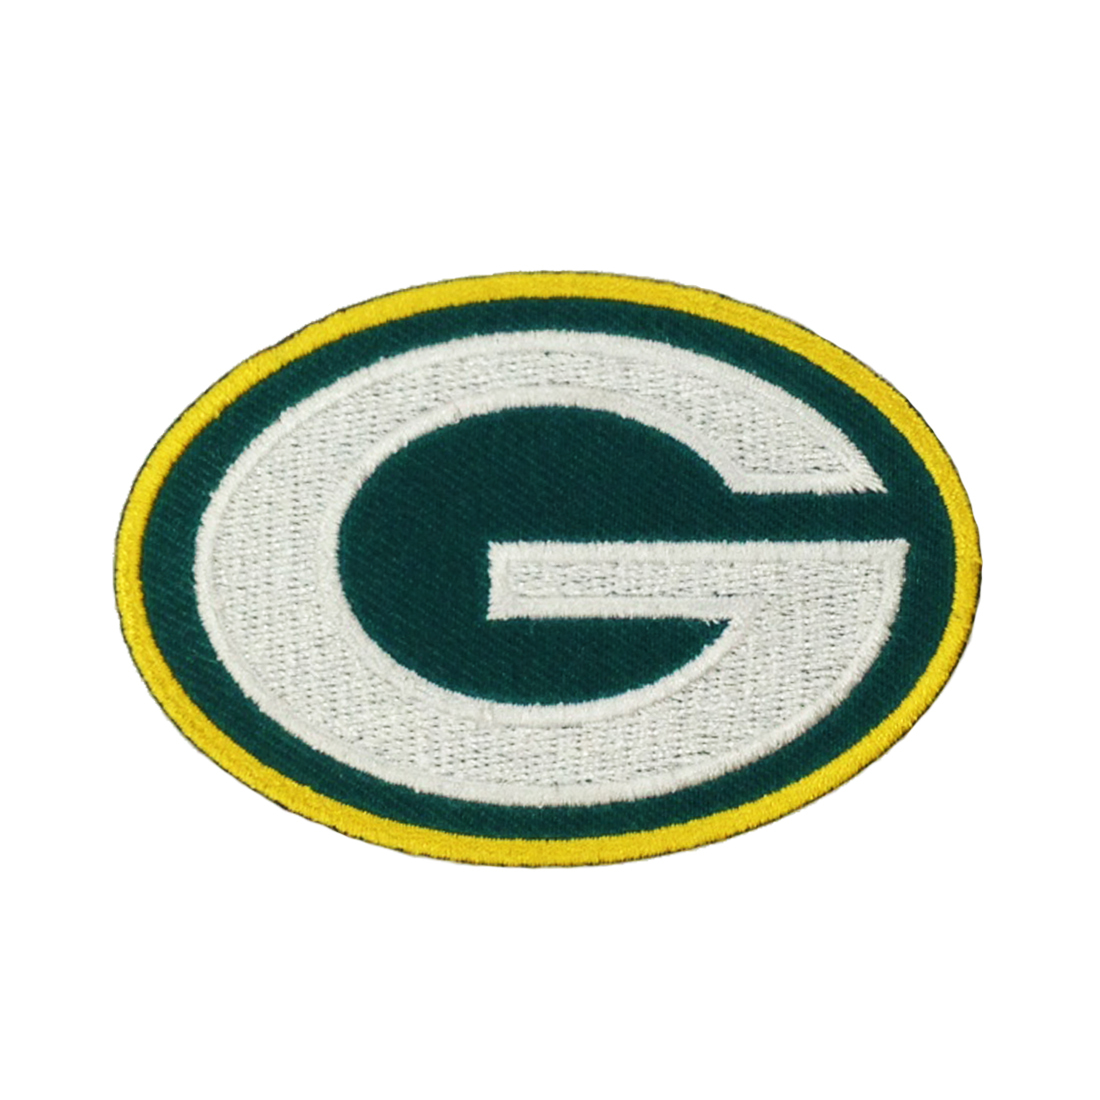 Green Bay Packers logo emblem embroidered Iron On Patch